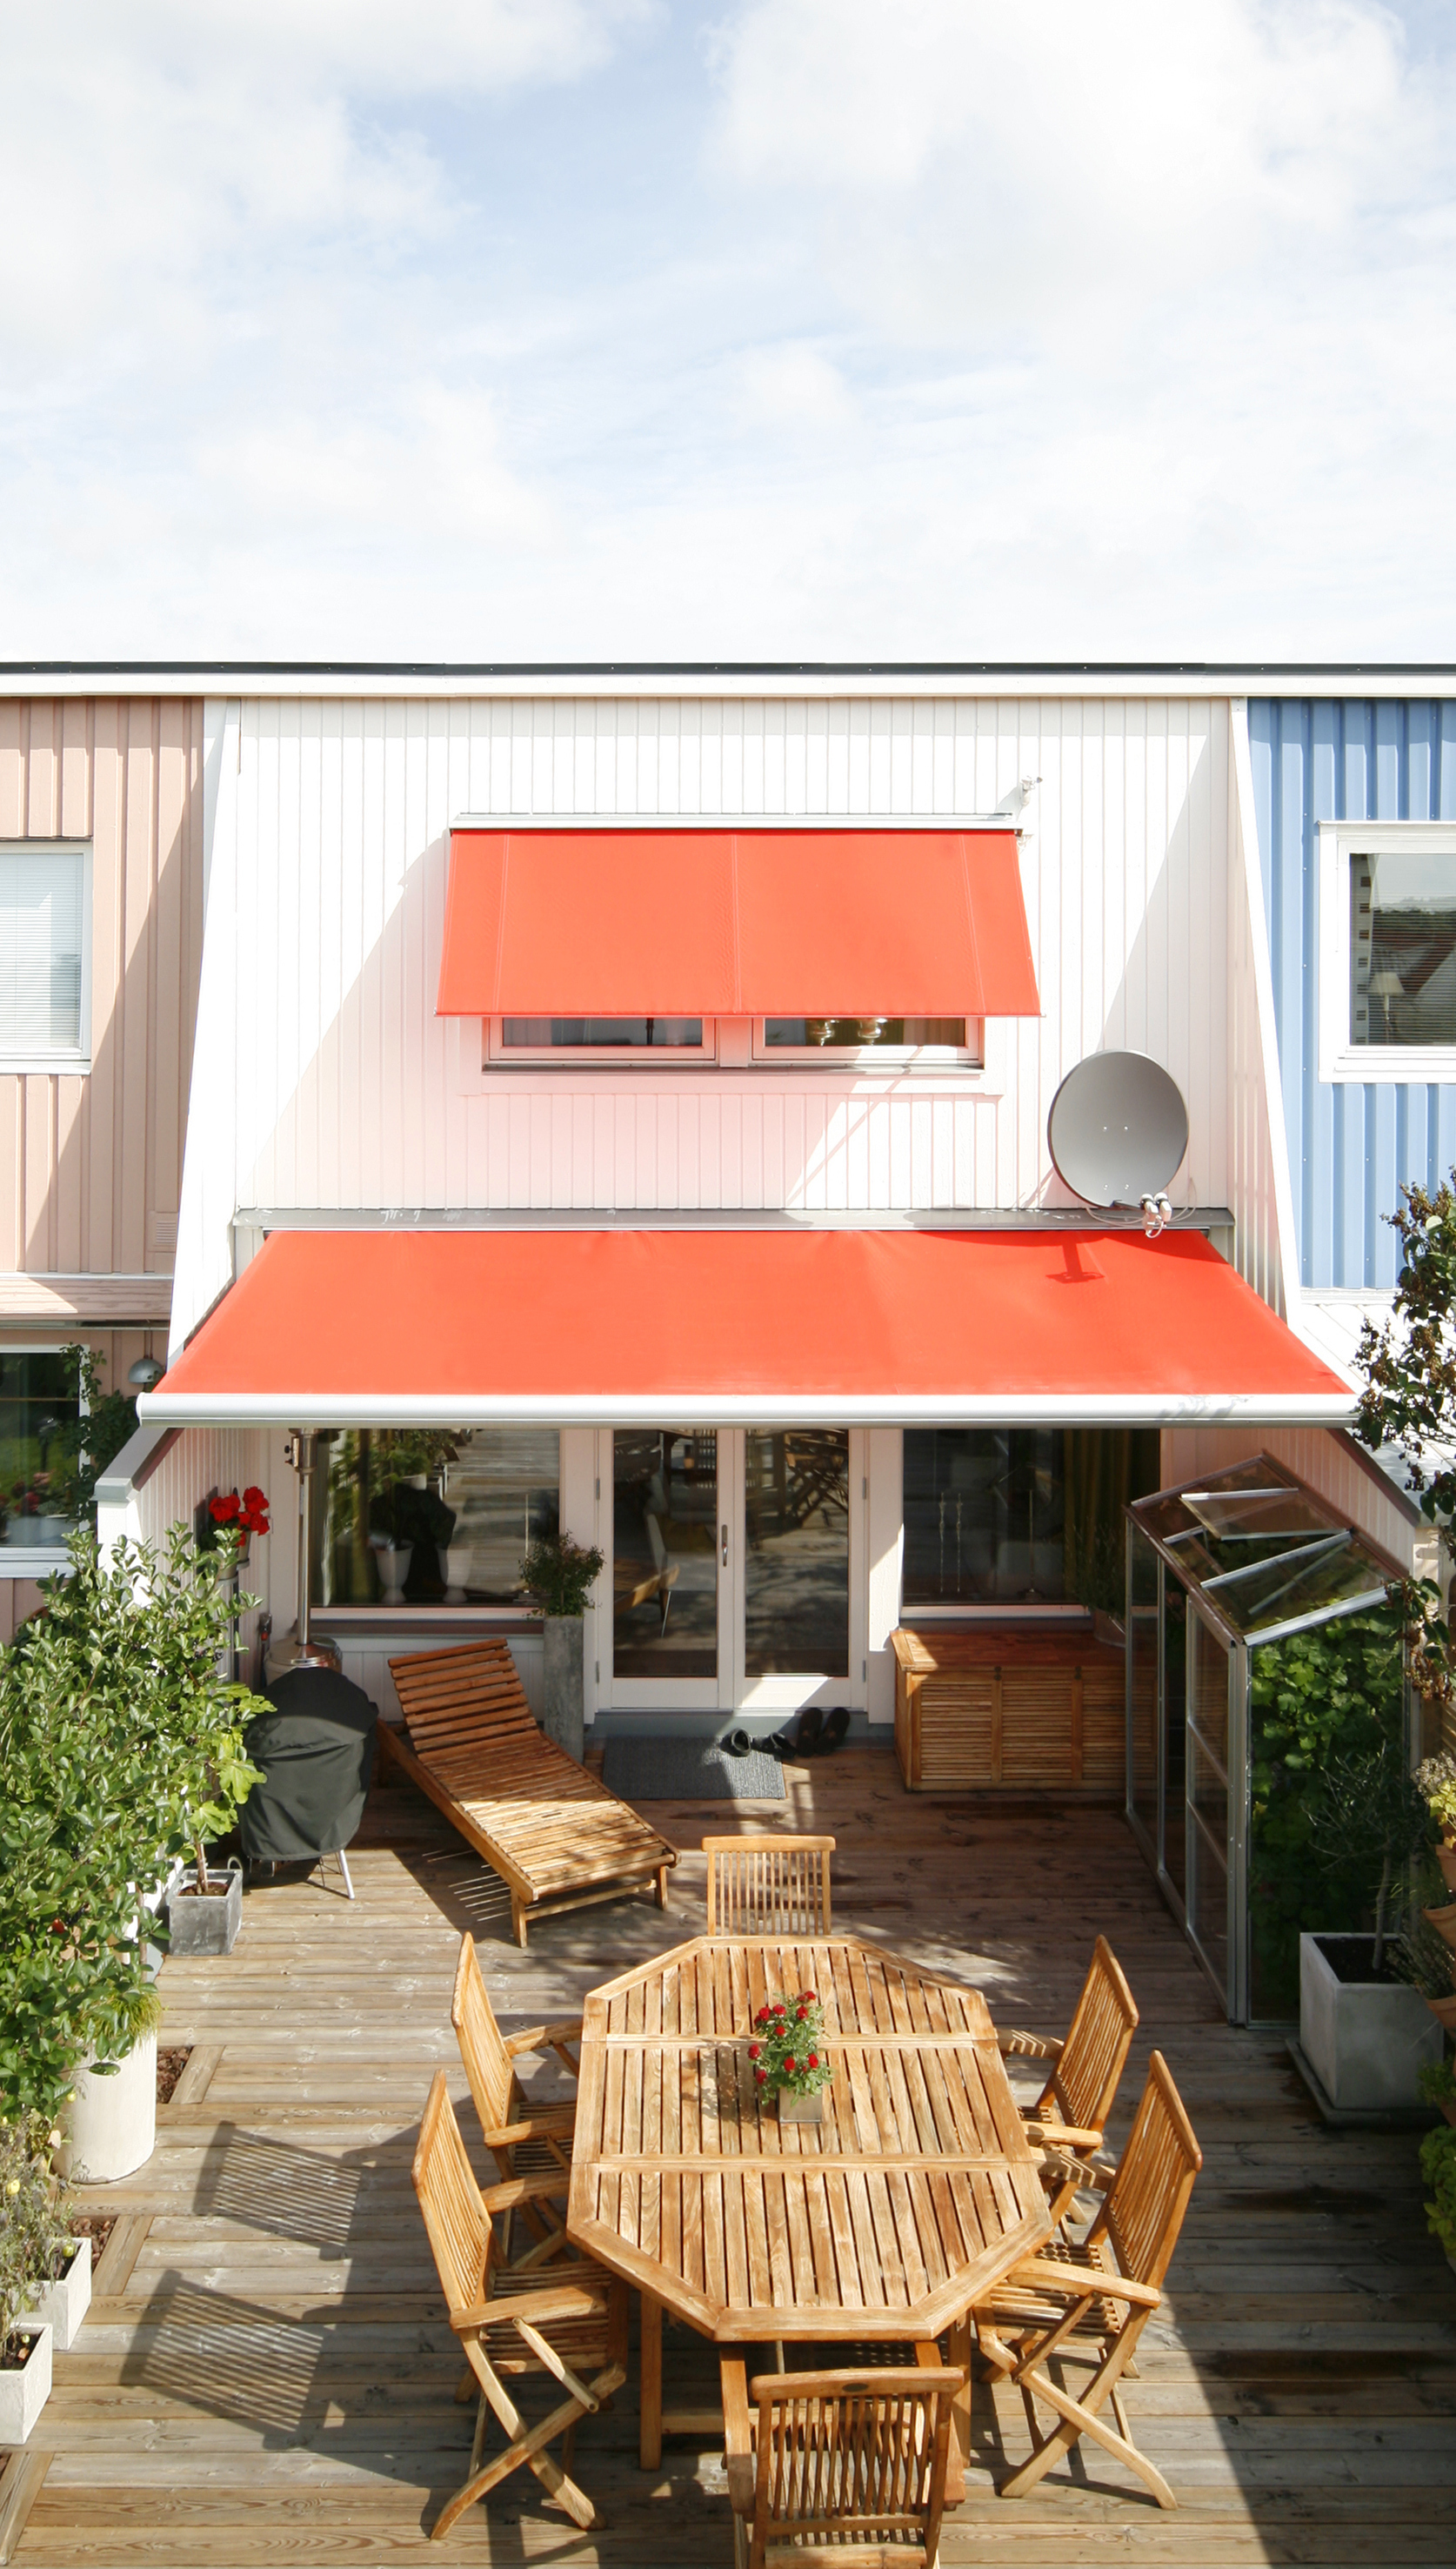 Retractable Awnings: Motorized or Manual?